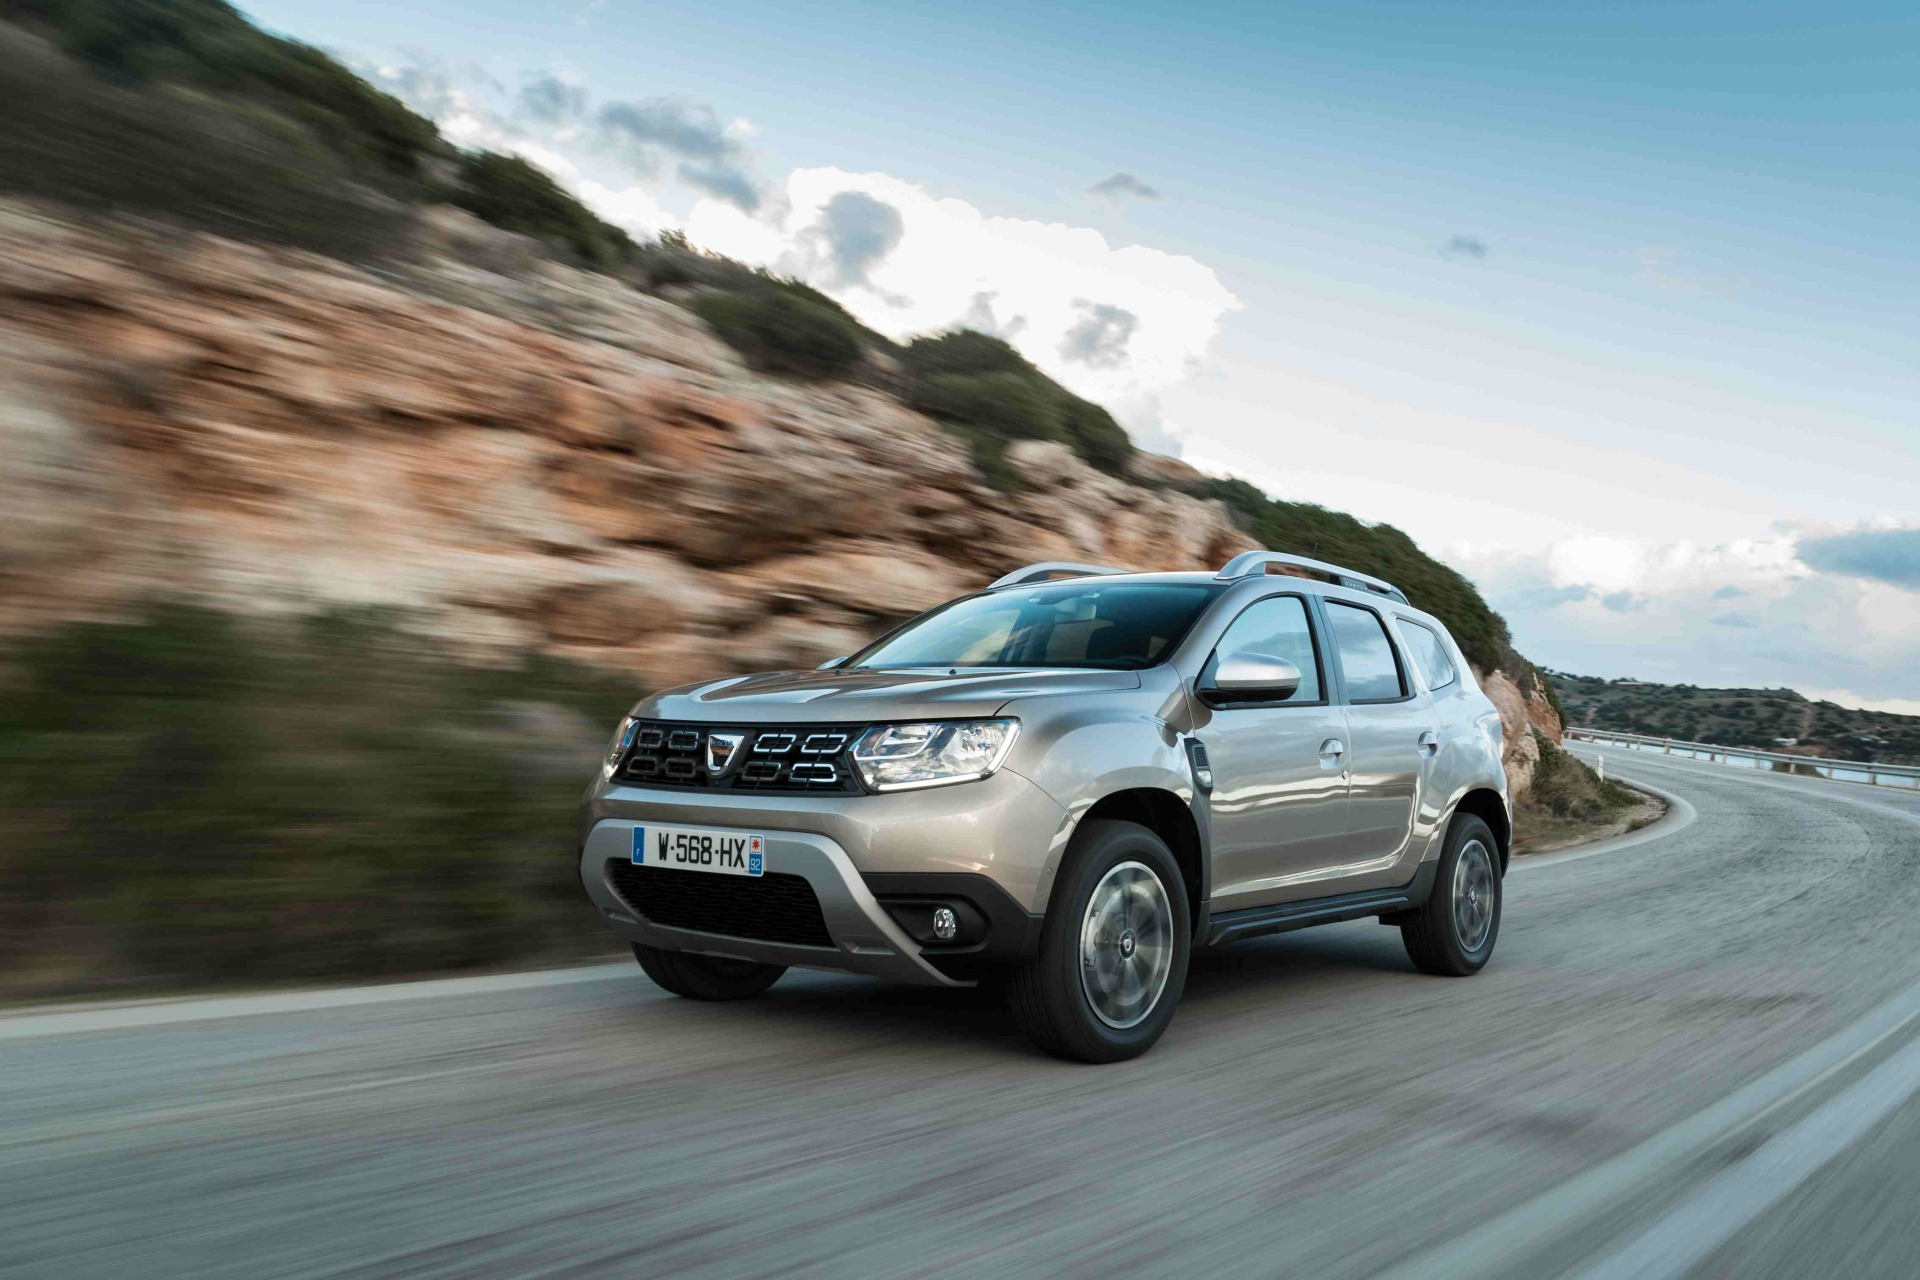 essai dacia duster 2018 notre avis sur le nouveau duster dci 110 dacia auto evasion. Black Bedroom Furniture Sets. Home Design Ideas